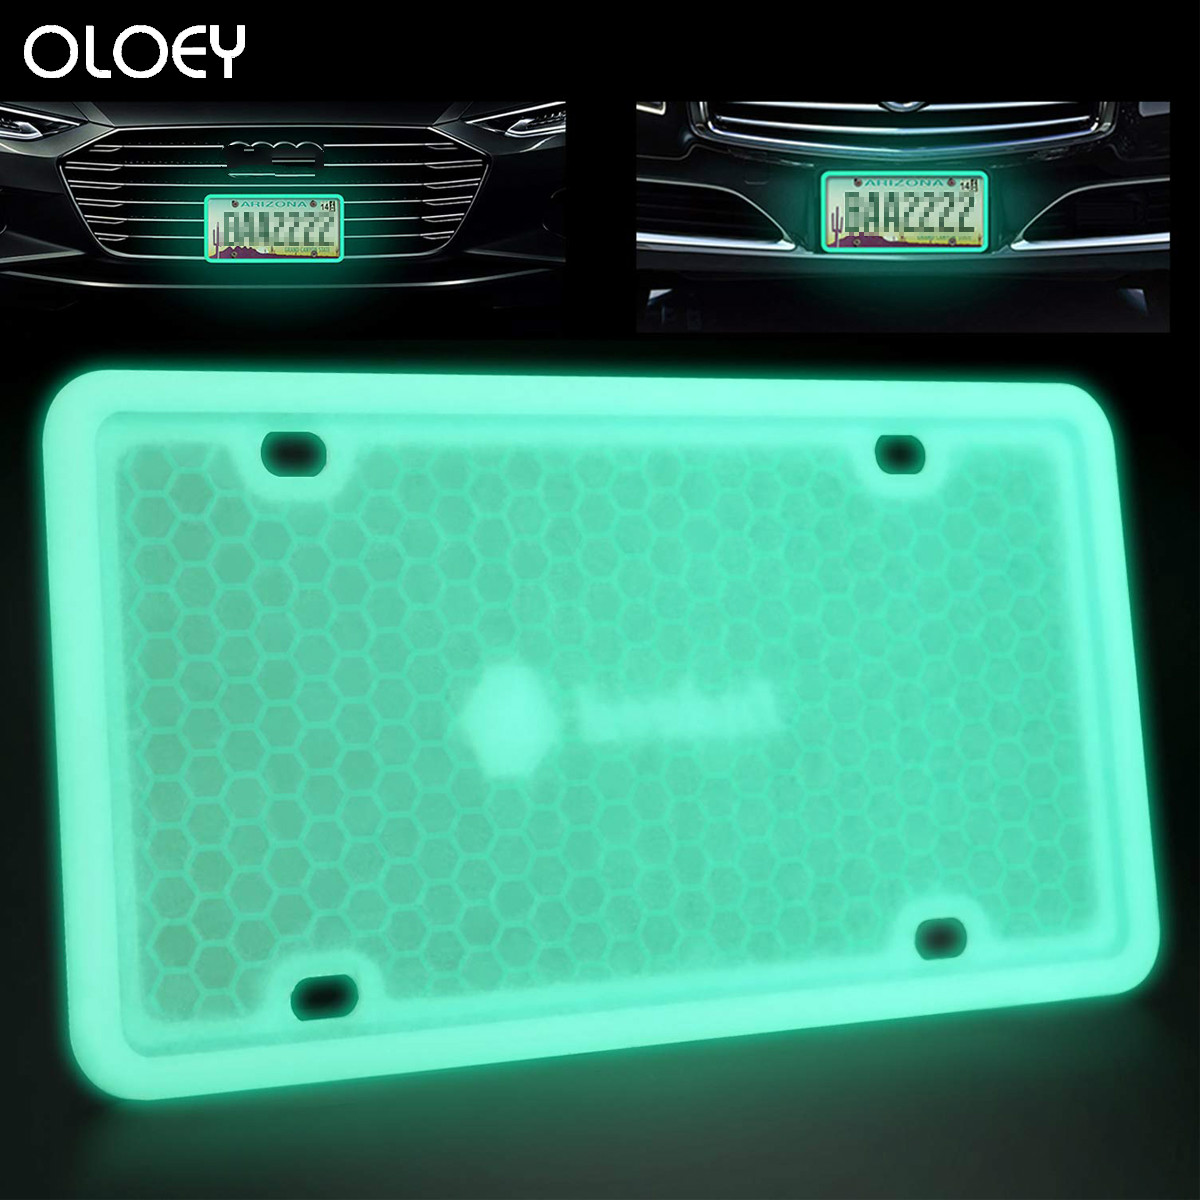 Glow License Plate Frame Silicone Rust Rattle Proof Weather Shock proof for Automotive bling License Plate Frame Fluorescence